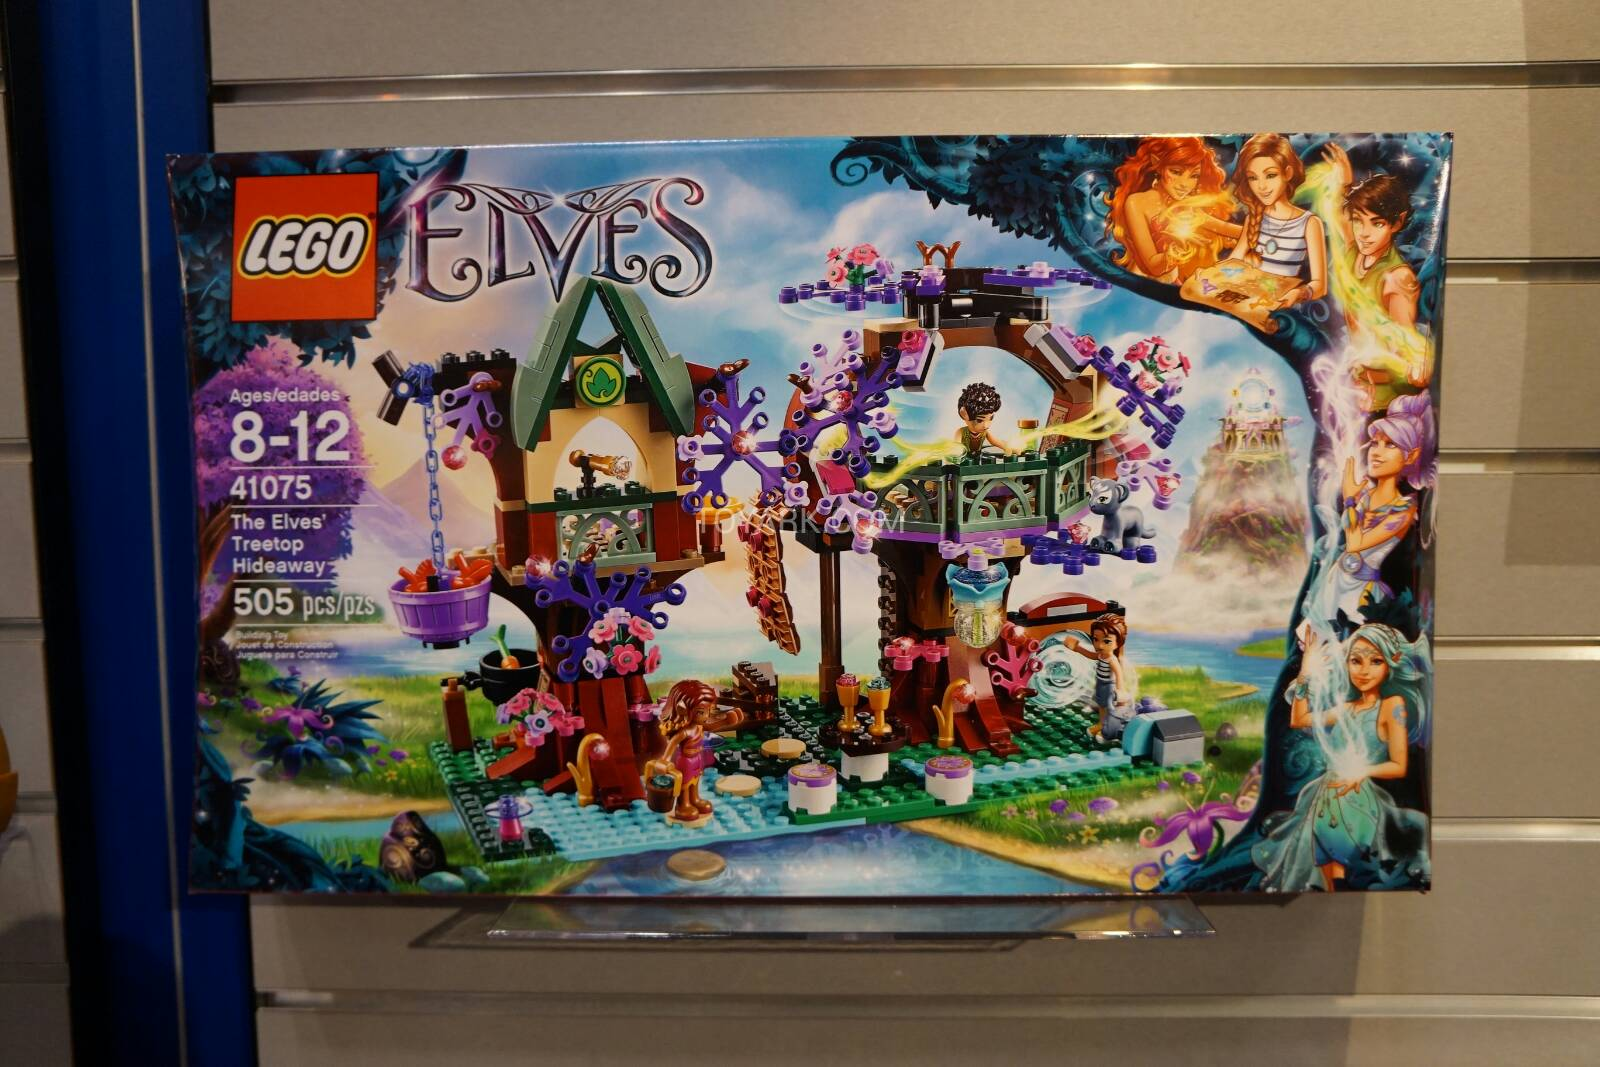 Toy-Fair-2015-LEGO-Elves-012.jpg